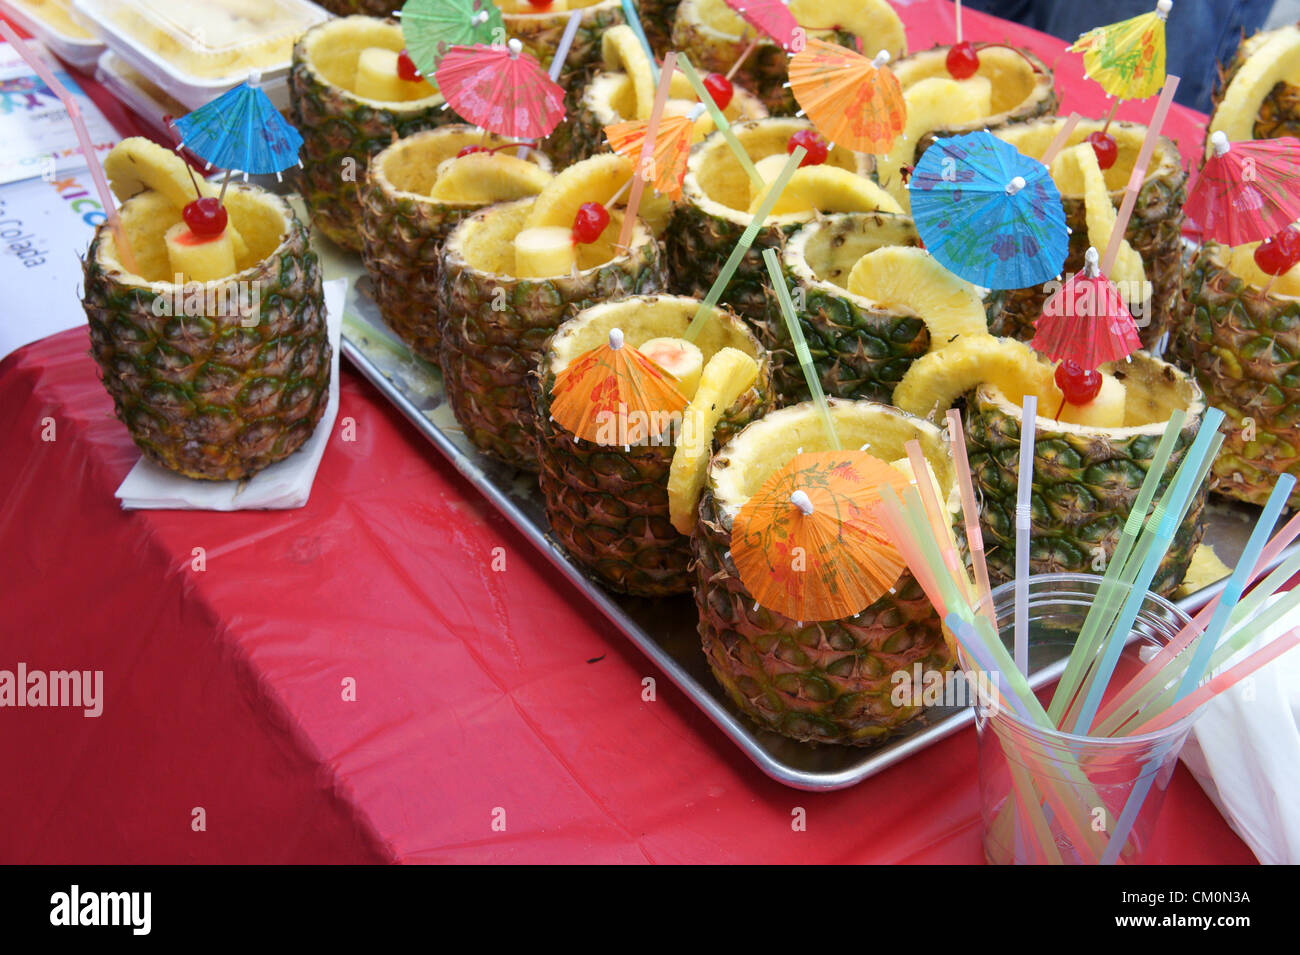 Puna coladas at the Mexico Fest Mexican independence day celebrations in Vancouver, British Columbia, Canada - Stock Image